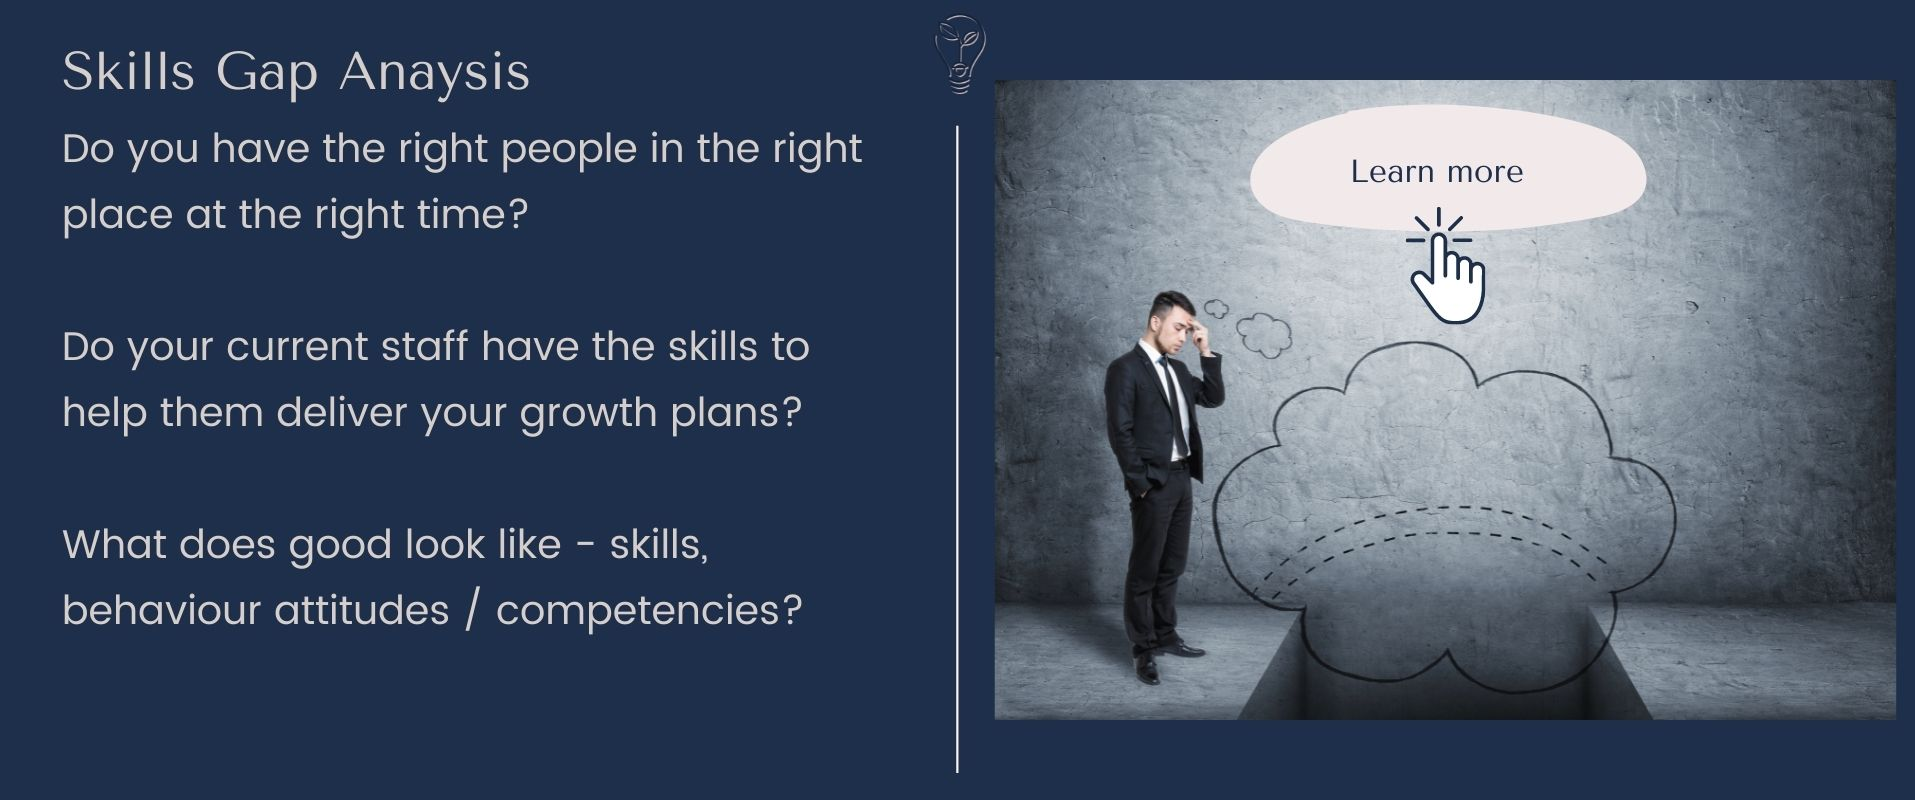 Do you have the right people in the right place at the right time? Do your current staff have the skills to help them deliver your growth plans? What does good look like - skills, behaviour attitudes / competencies? skills gap analysis Eurika - Leanne Flower Northamptonshire, Buckinghamshire, London, Warwickshire, Leicestershire, Oxfordshire